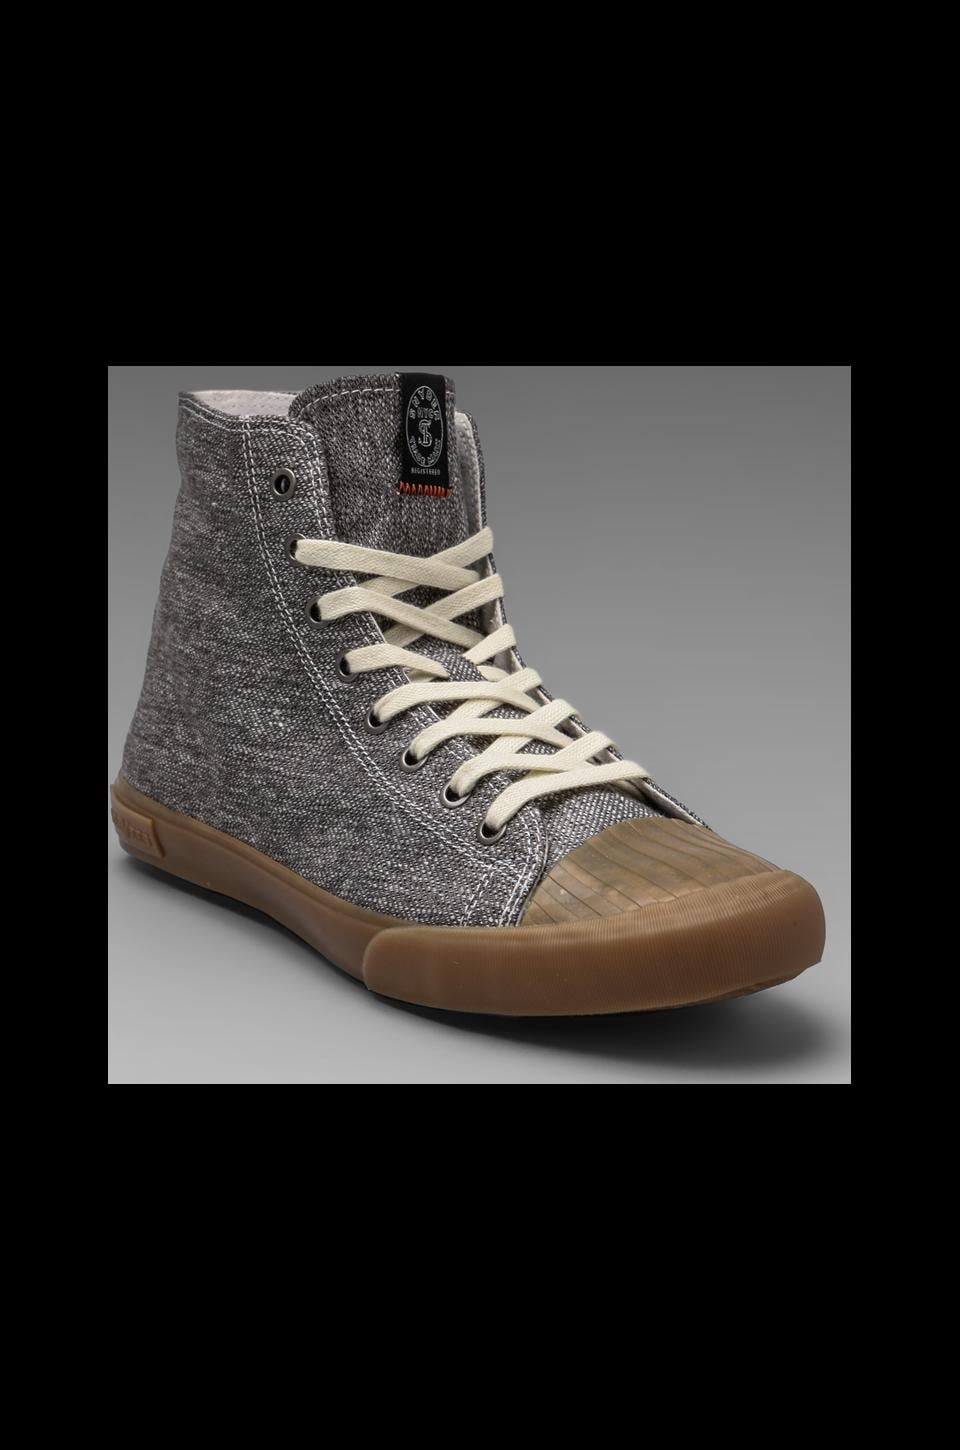 SeaVees x Todd Snyder Army Issue High Top in Grey Twill